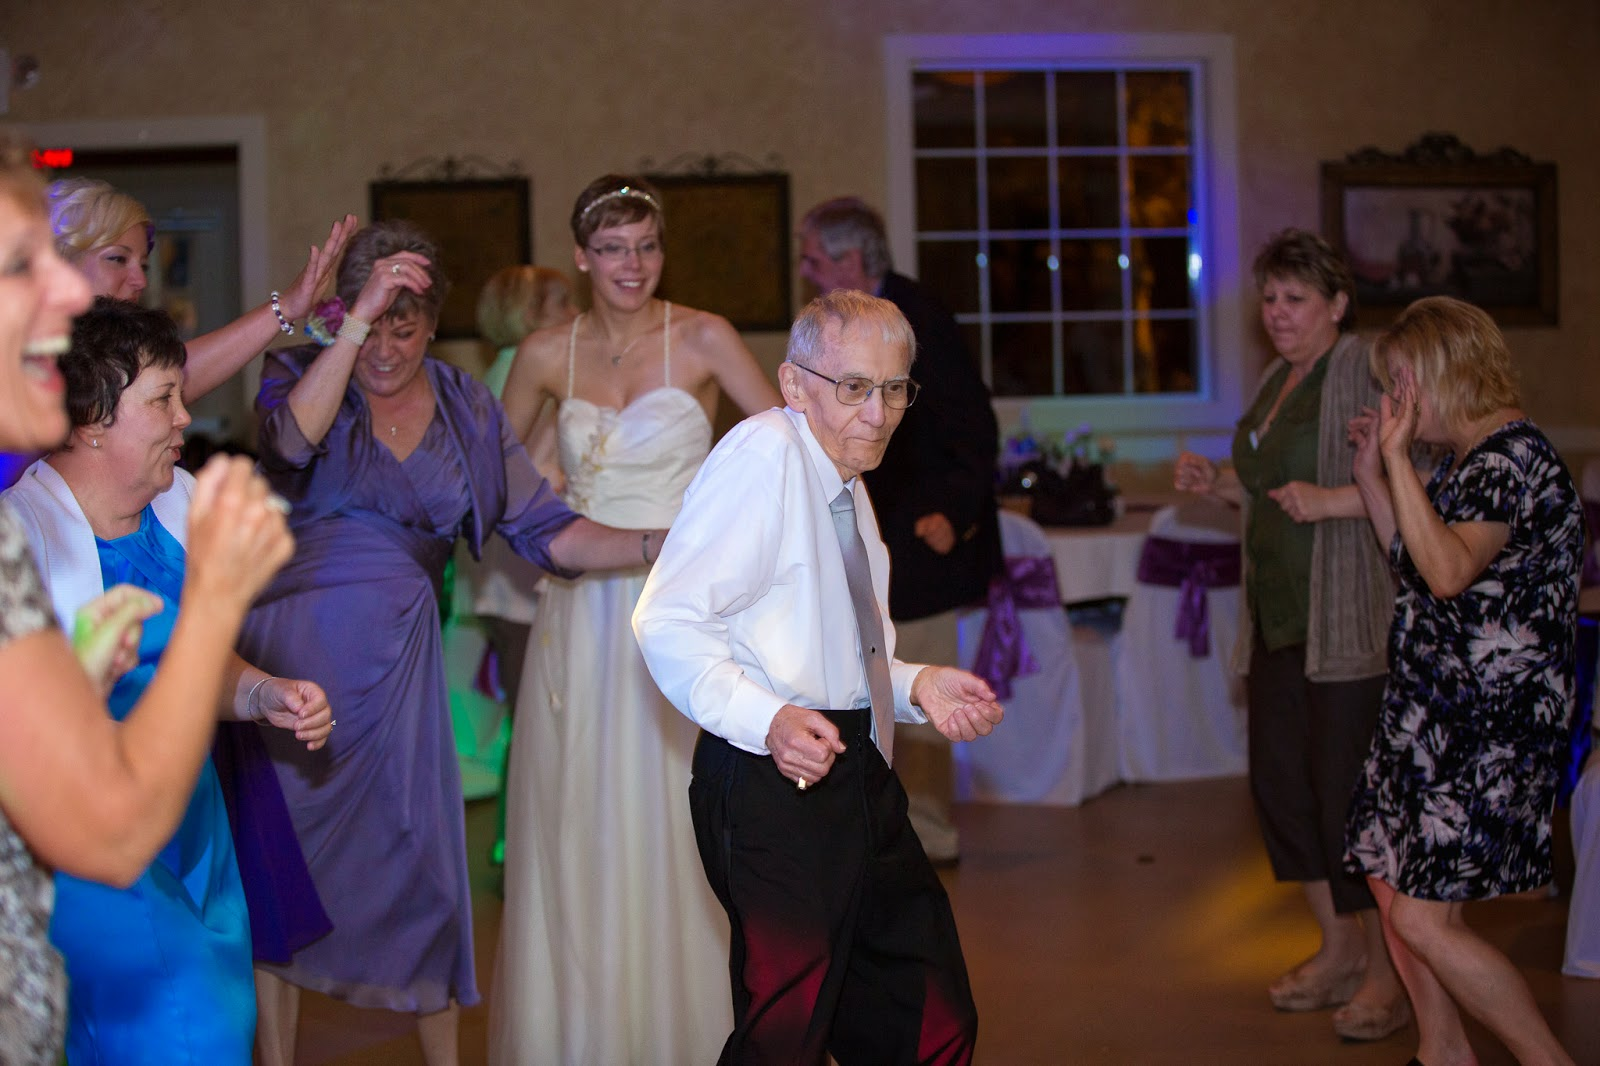 Photo of my 80-something year-old grandfather getting his dance on!